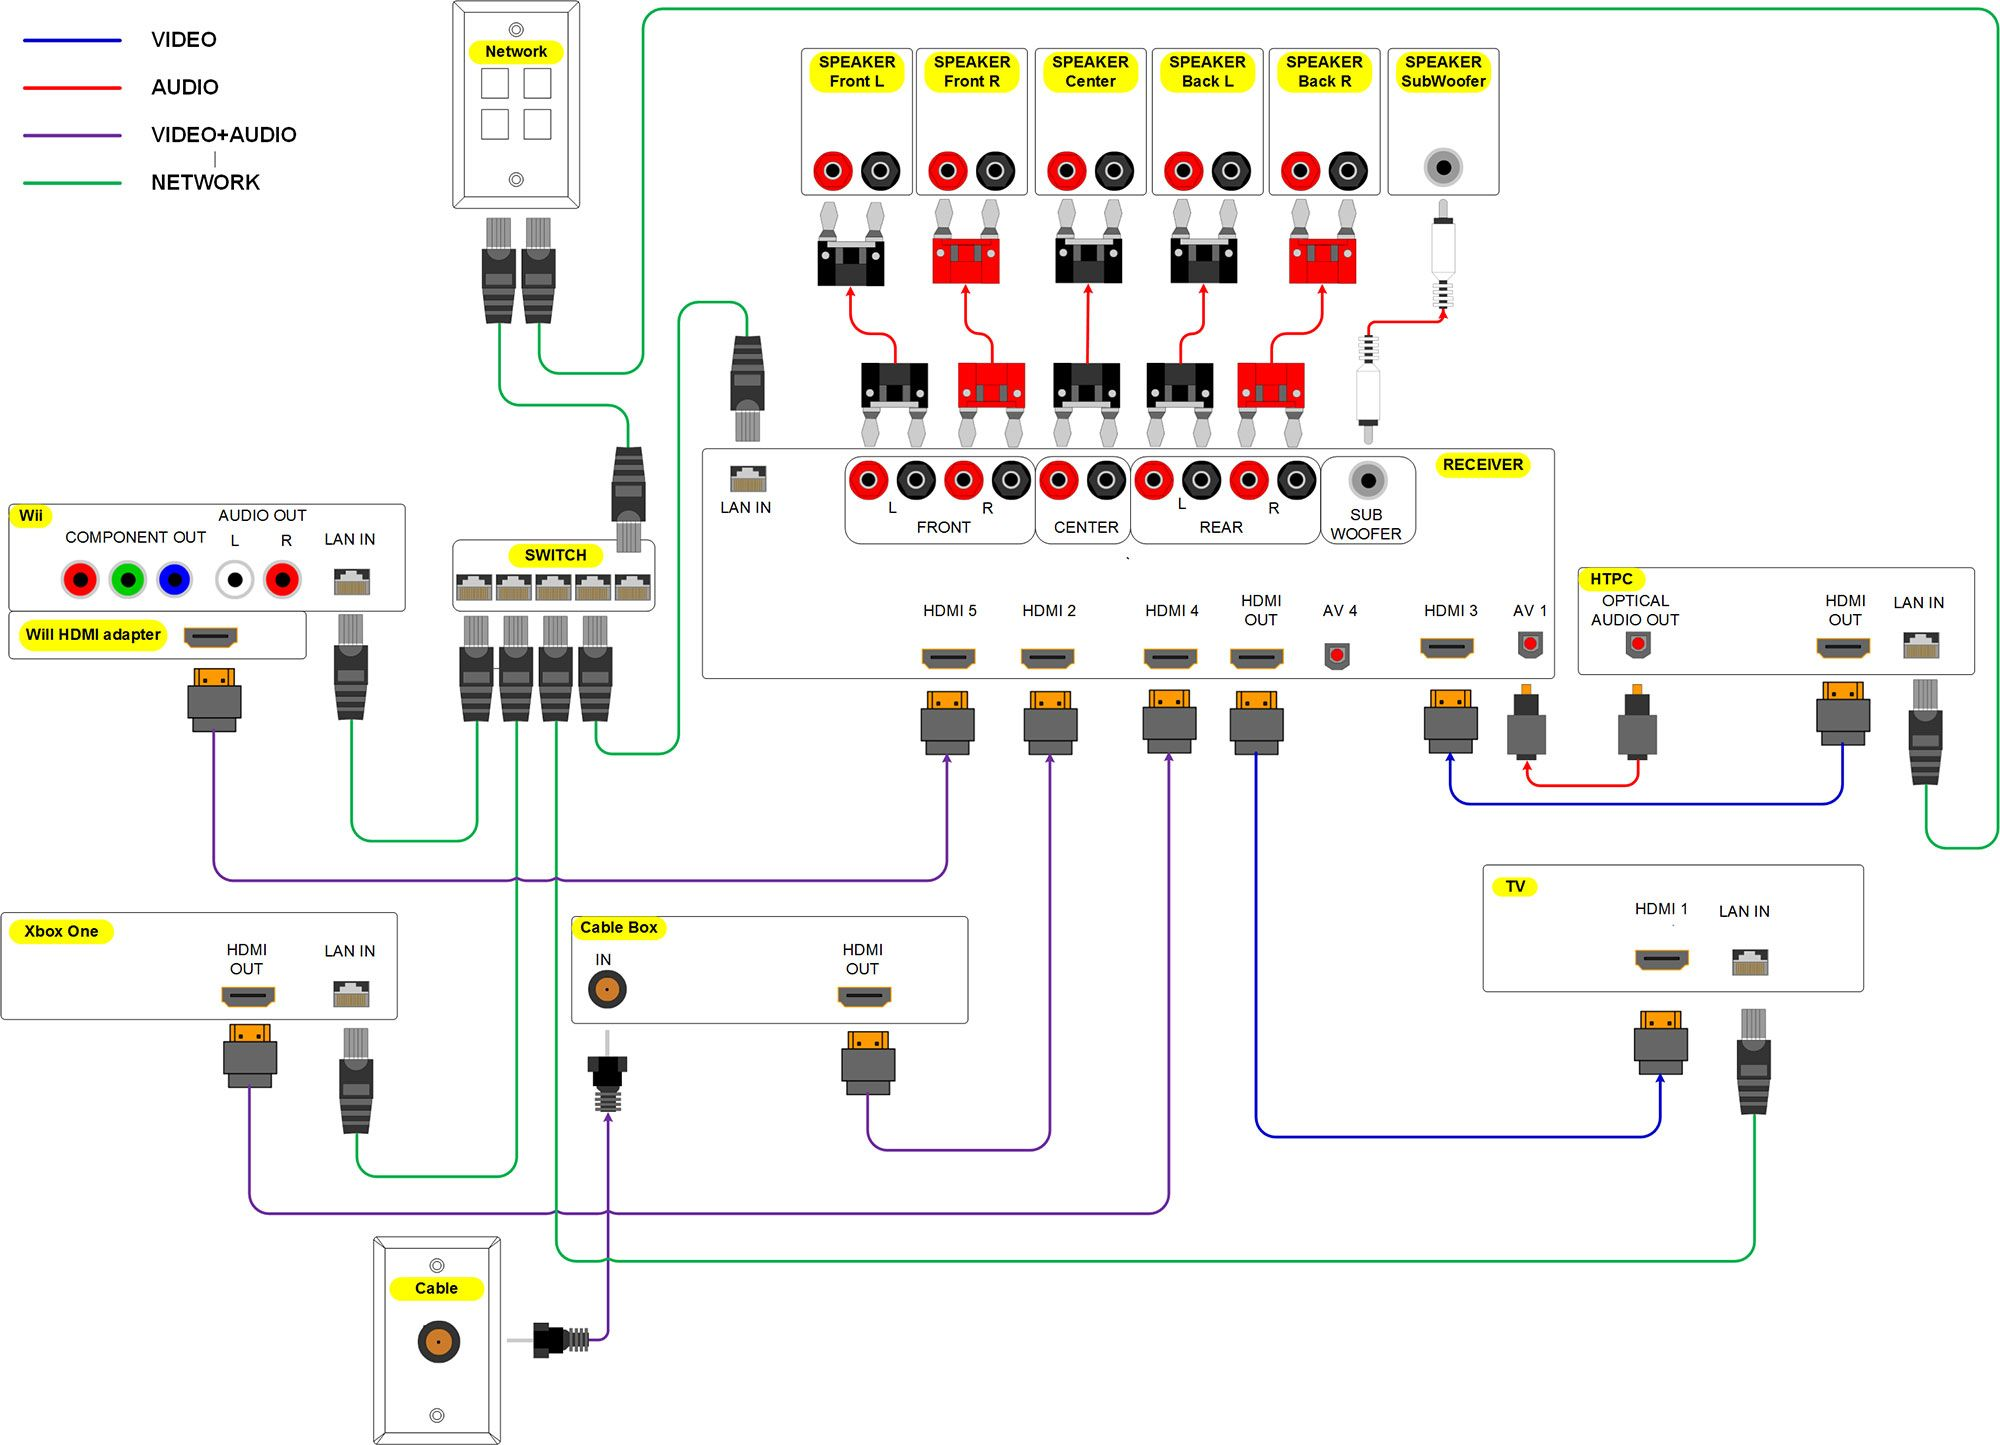 Marvelous Home Audio Wiring Diagrams Moreover Whole House Speaker System Wiring Cloud Peadfoxcilixyz